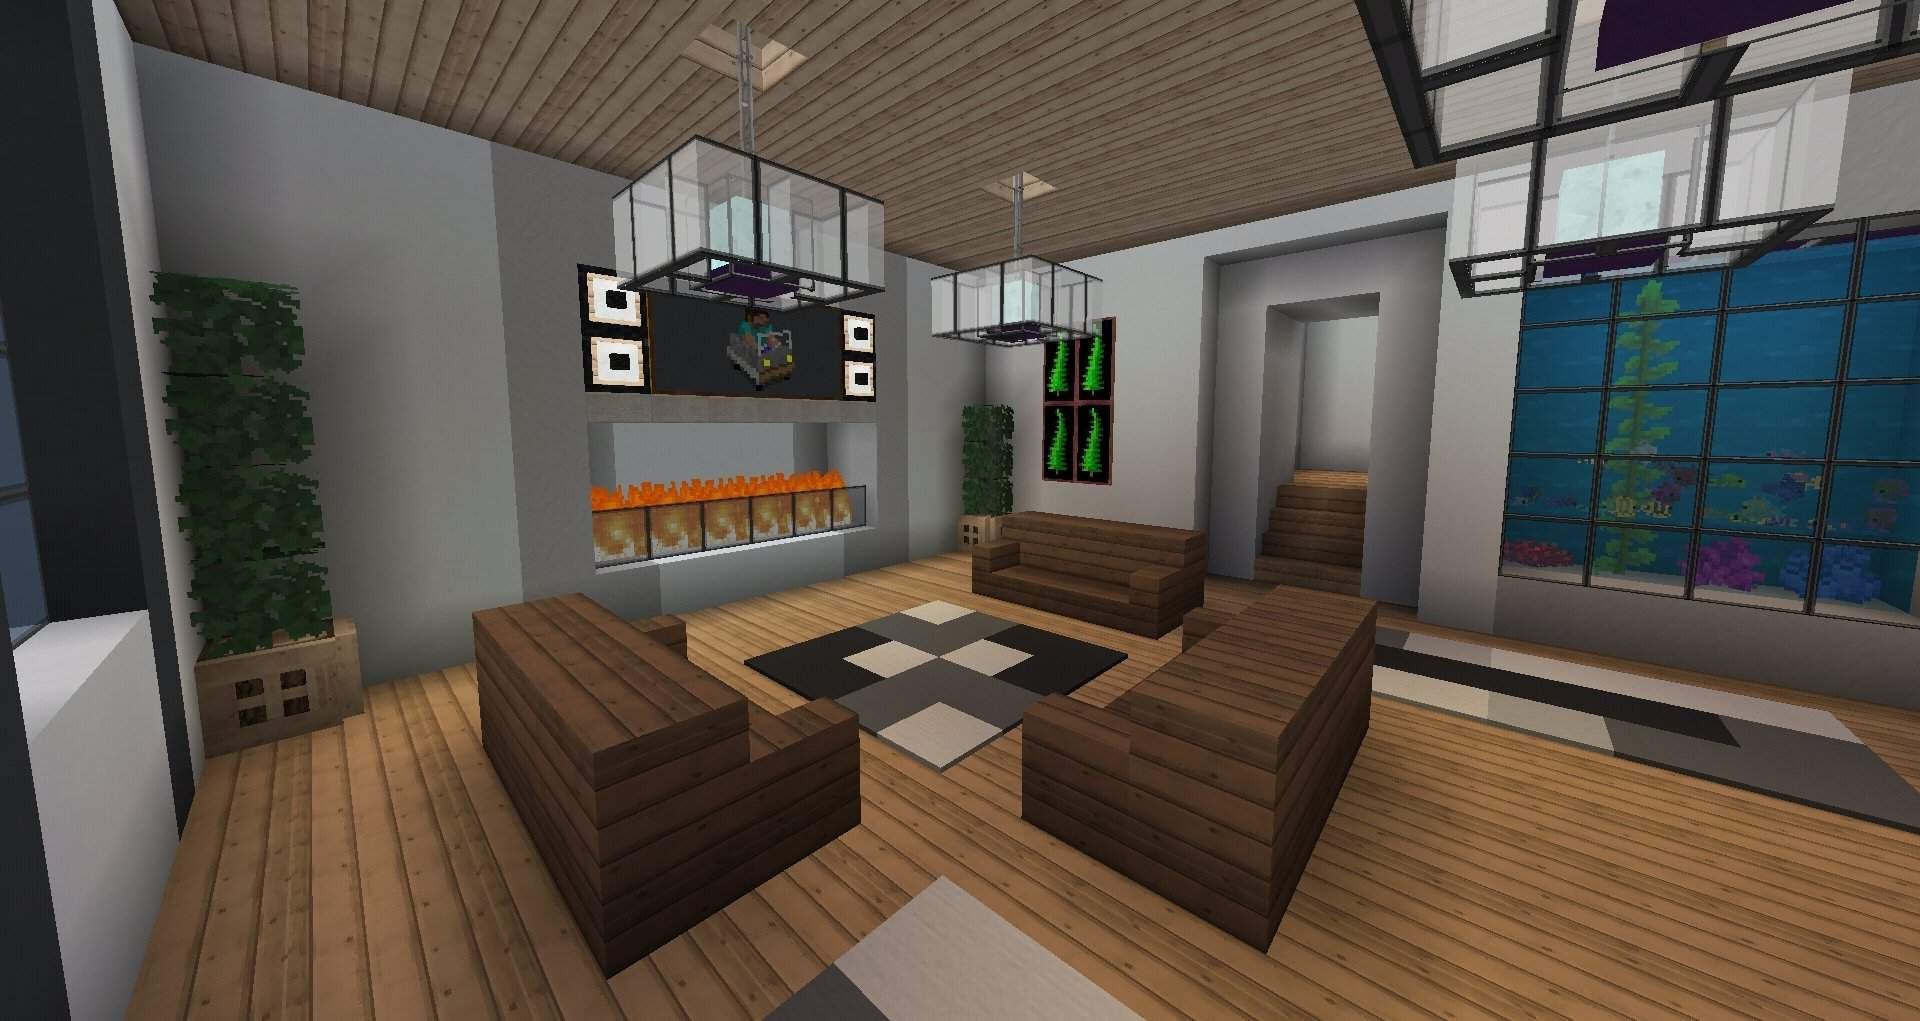 Awesome Minecraft Interior House Ideas And Review In 2020 Living Room In Minecraft Minecraft Interior Design Modern Houses Interior